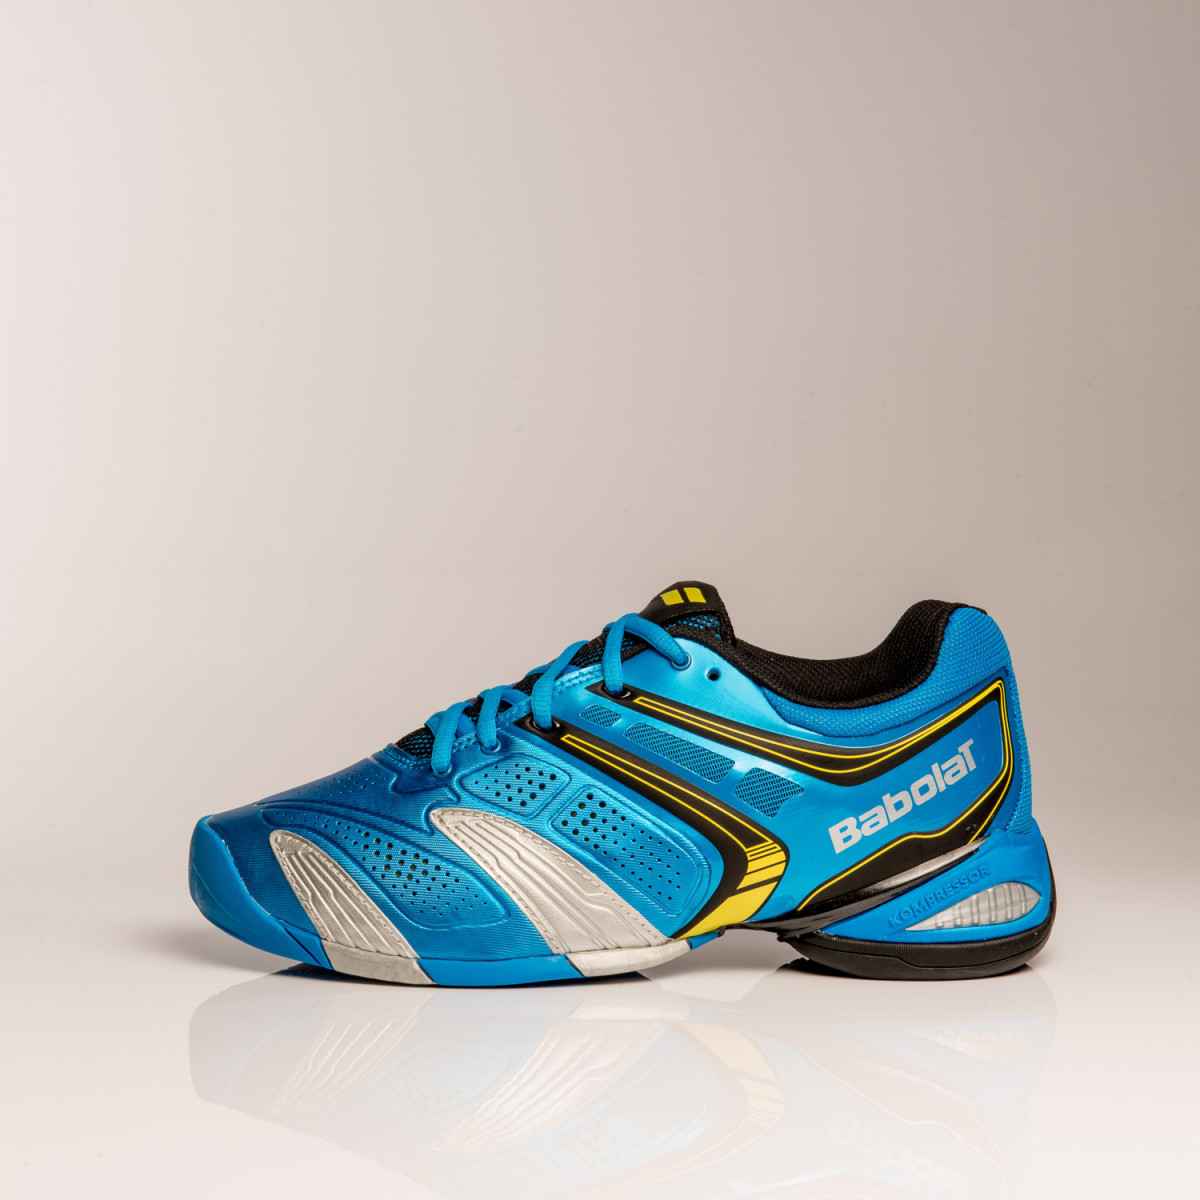 ZAPATILLAS BABOLAT V-PRO 2 ALL COURT